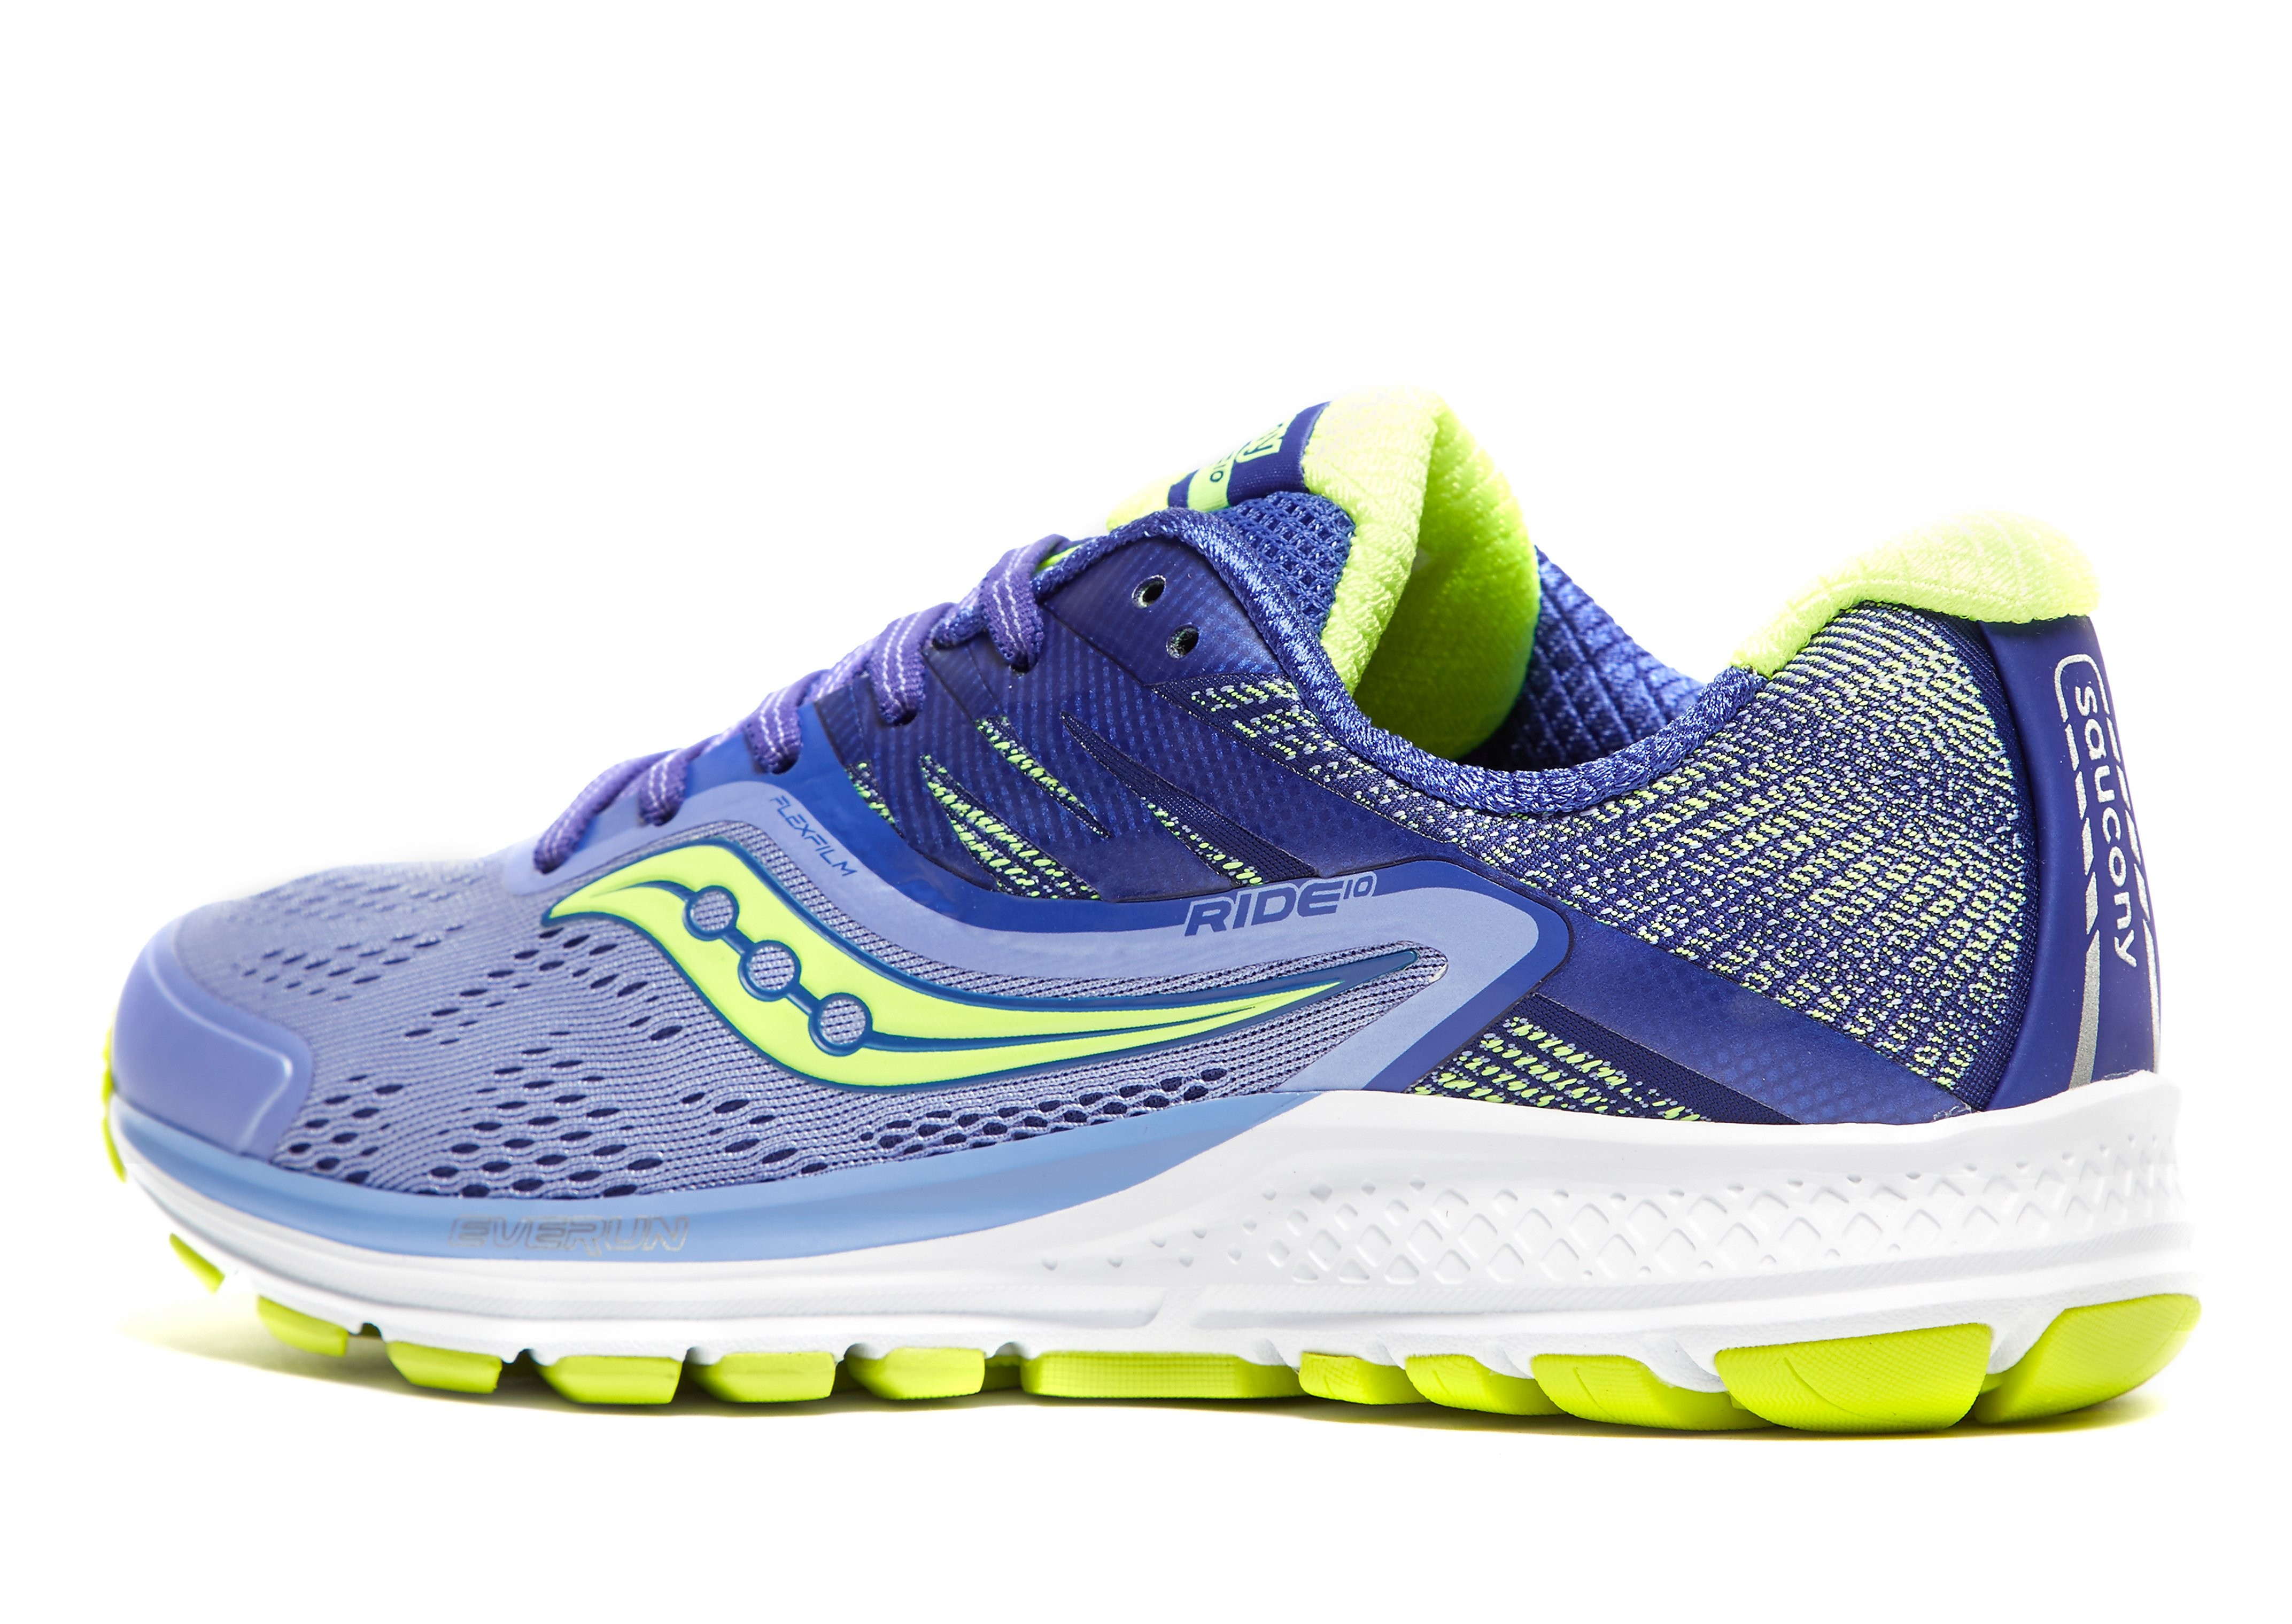 Saucony Ride 10 Women's